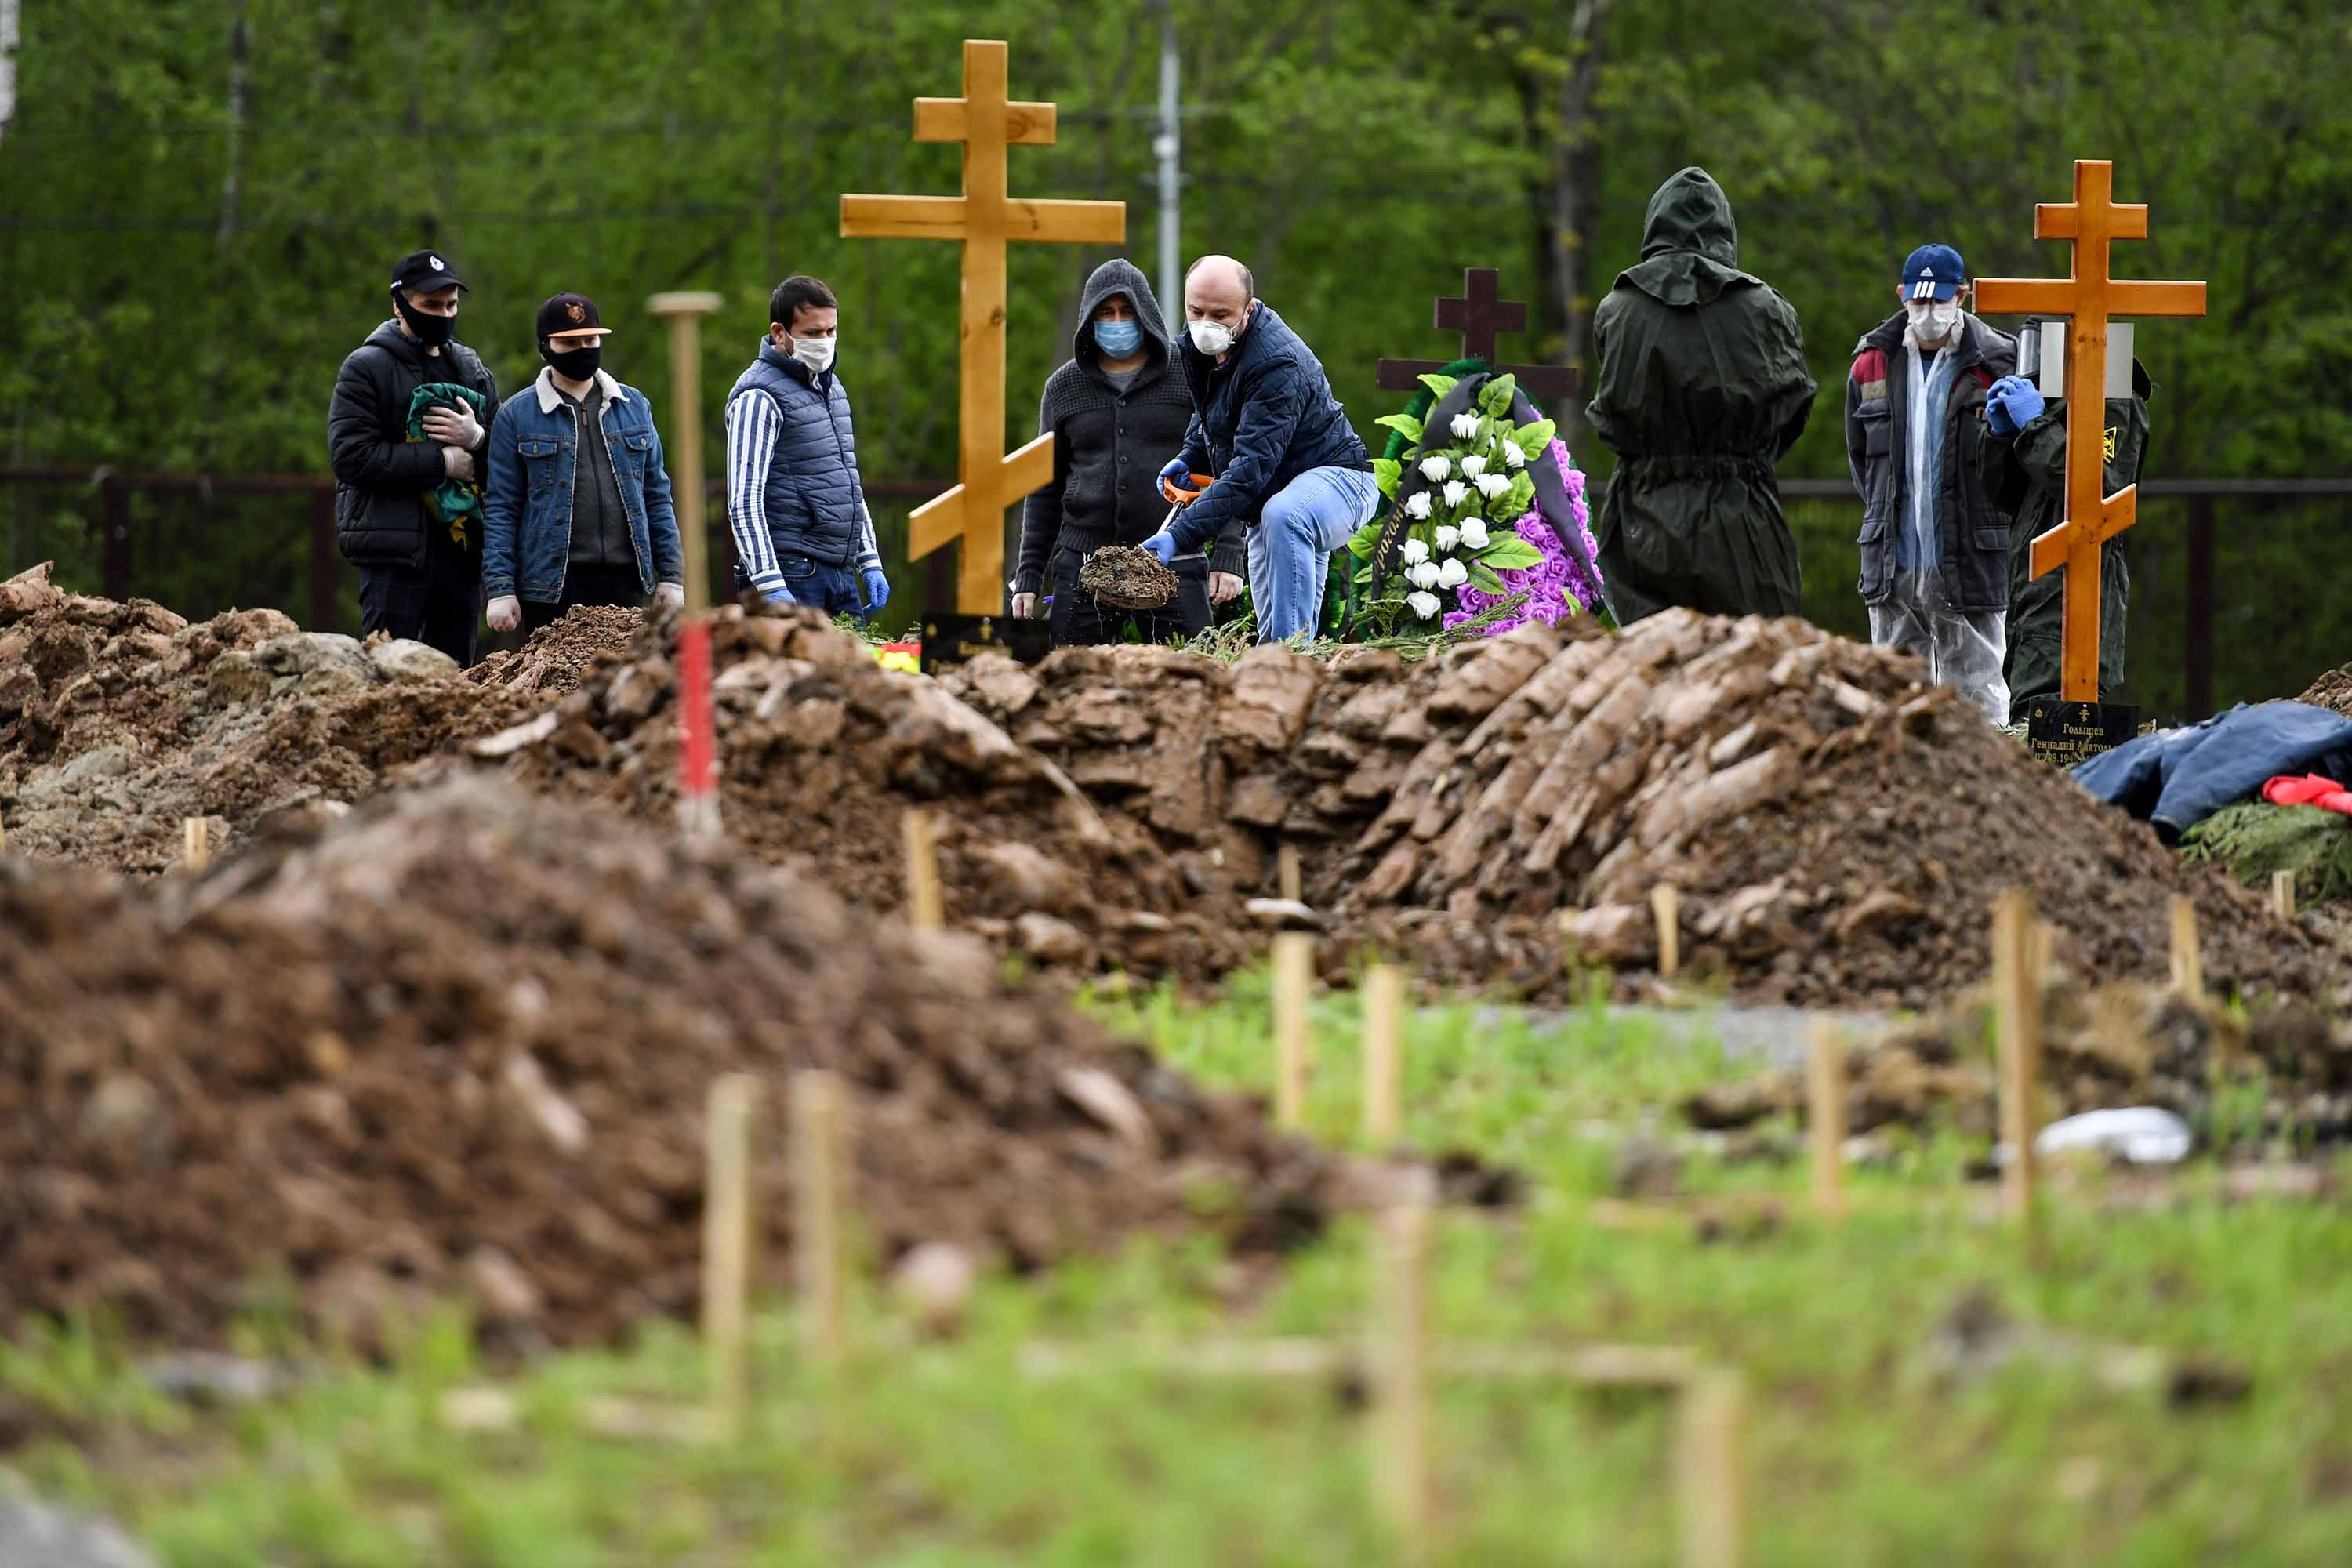 Mourners attend a burial ceremony of a coronavirus victim at a cemetery on the outskirts of Moscow, on May 15.